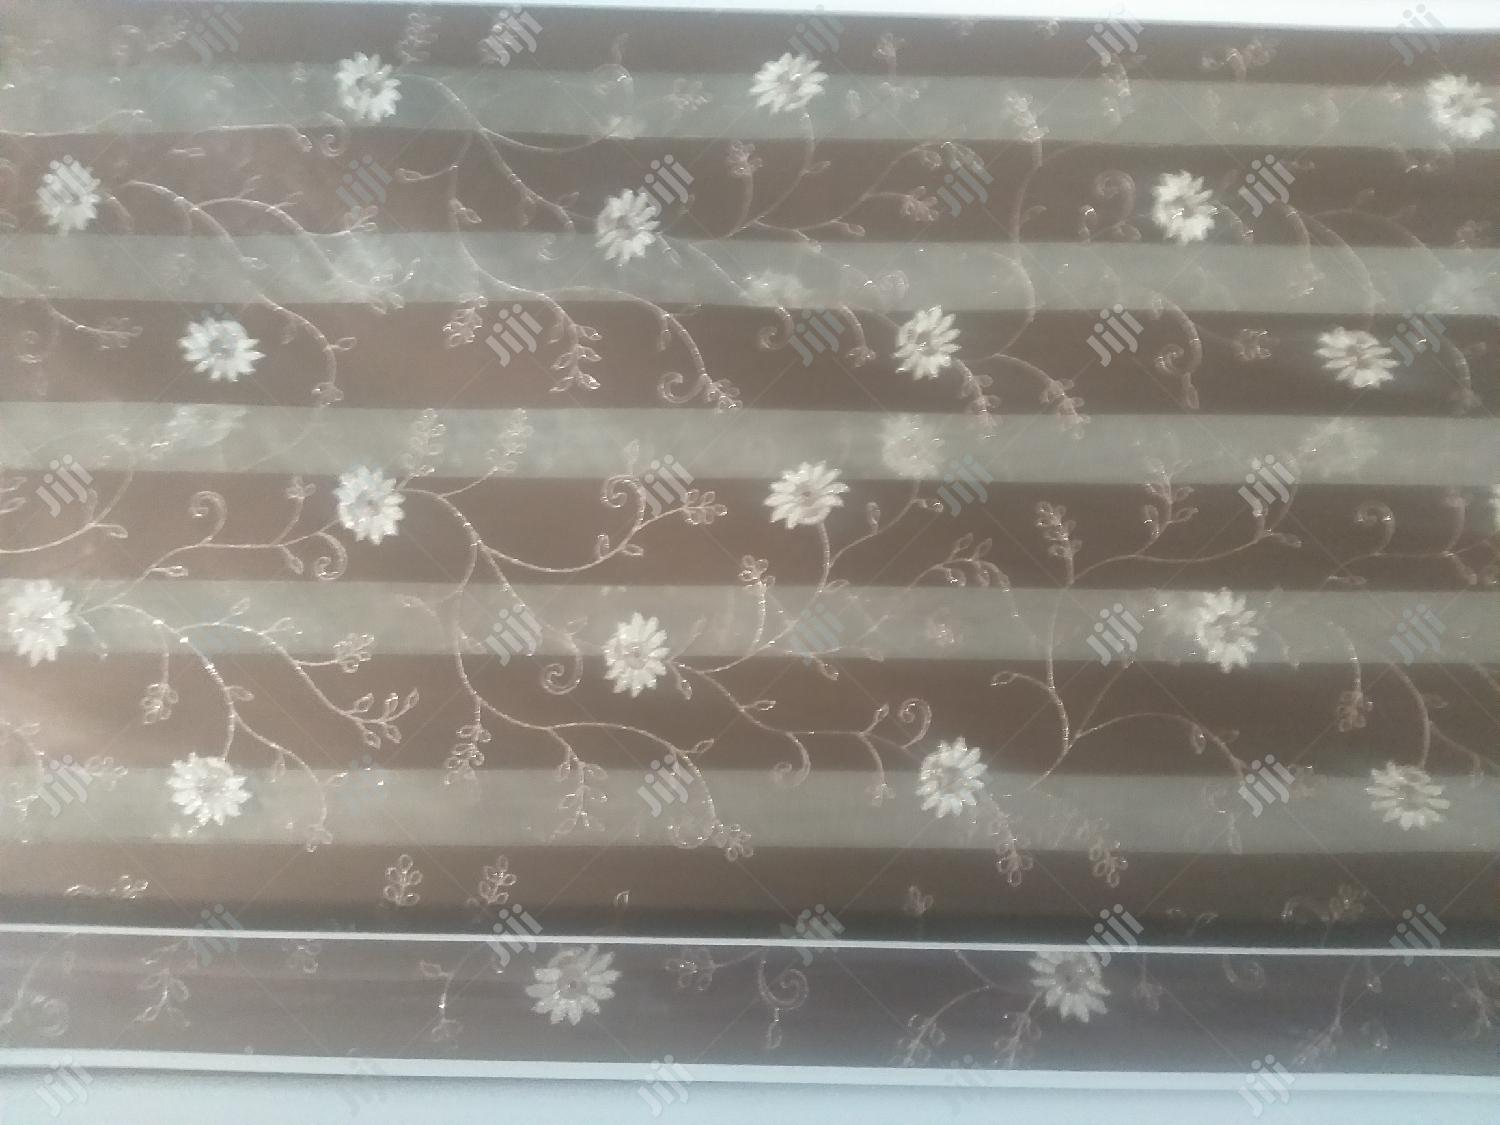 Day And Night Window Blinds 2020 Designs Are Already Available   Home Accessories for sale in Enugu / Enugu, Enugu State, Nigeria